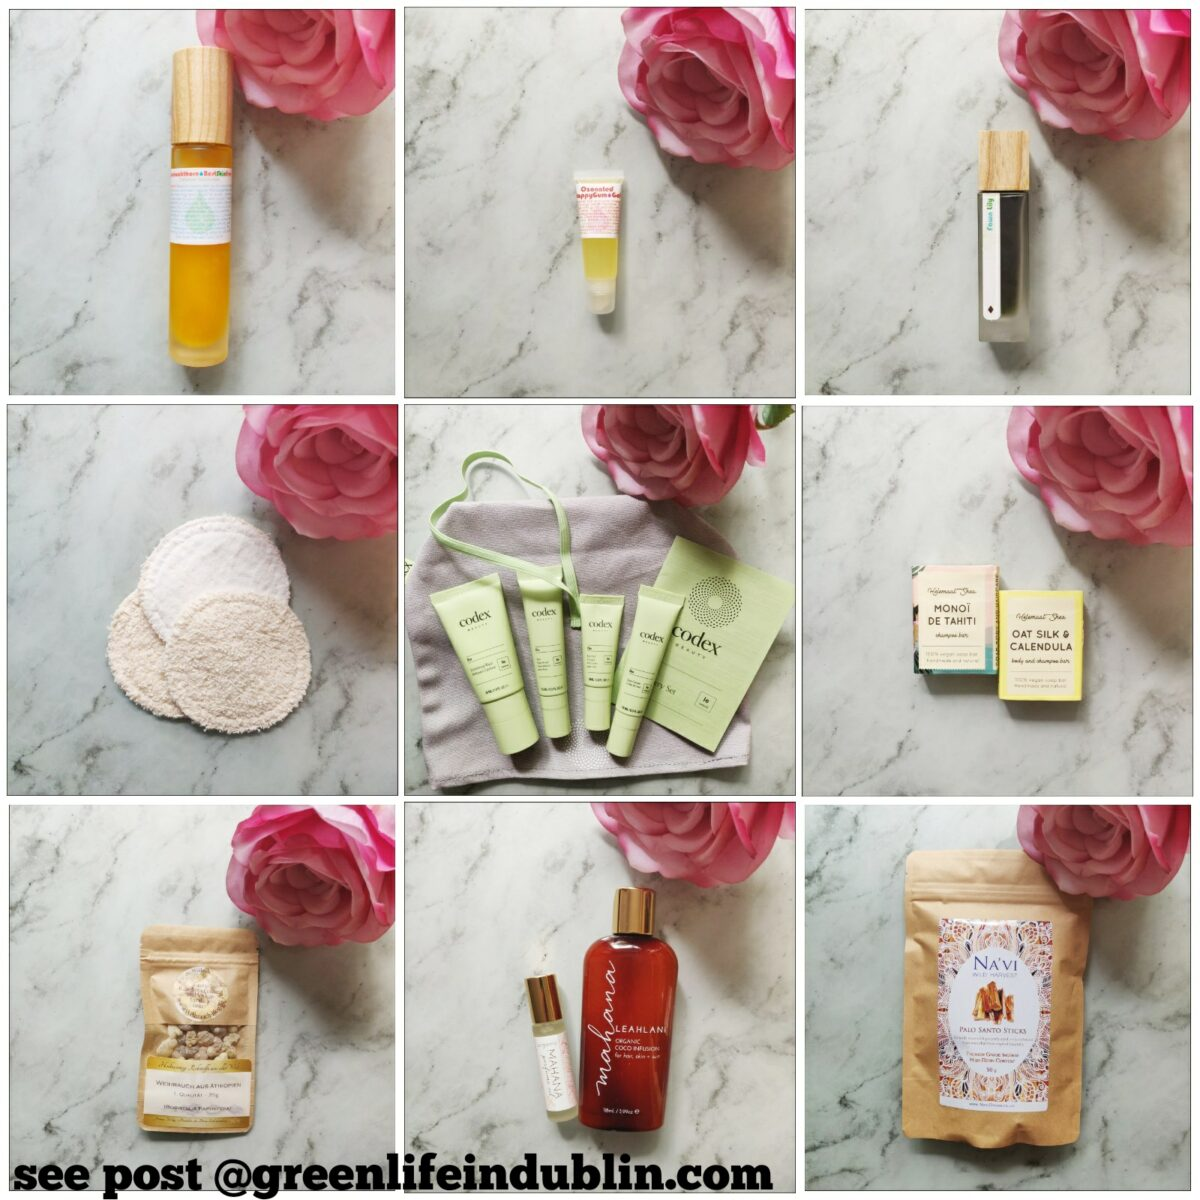 Dutch Health Store Haul – Leahlani Skincare, Living Libations, Jeomra, Navi Organics & more